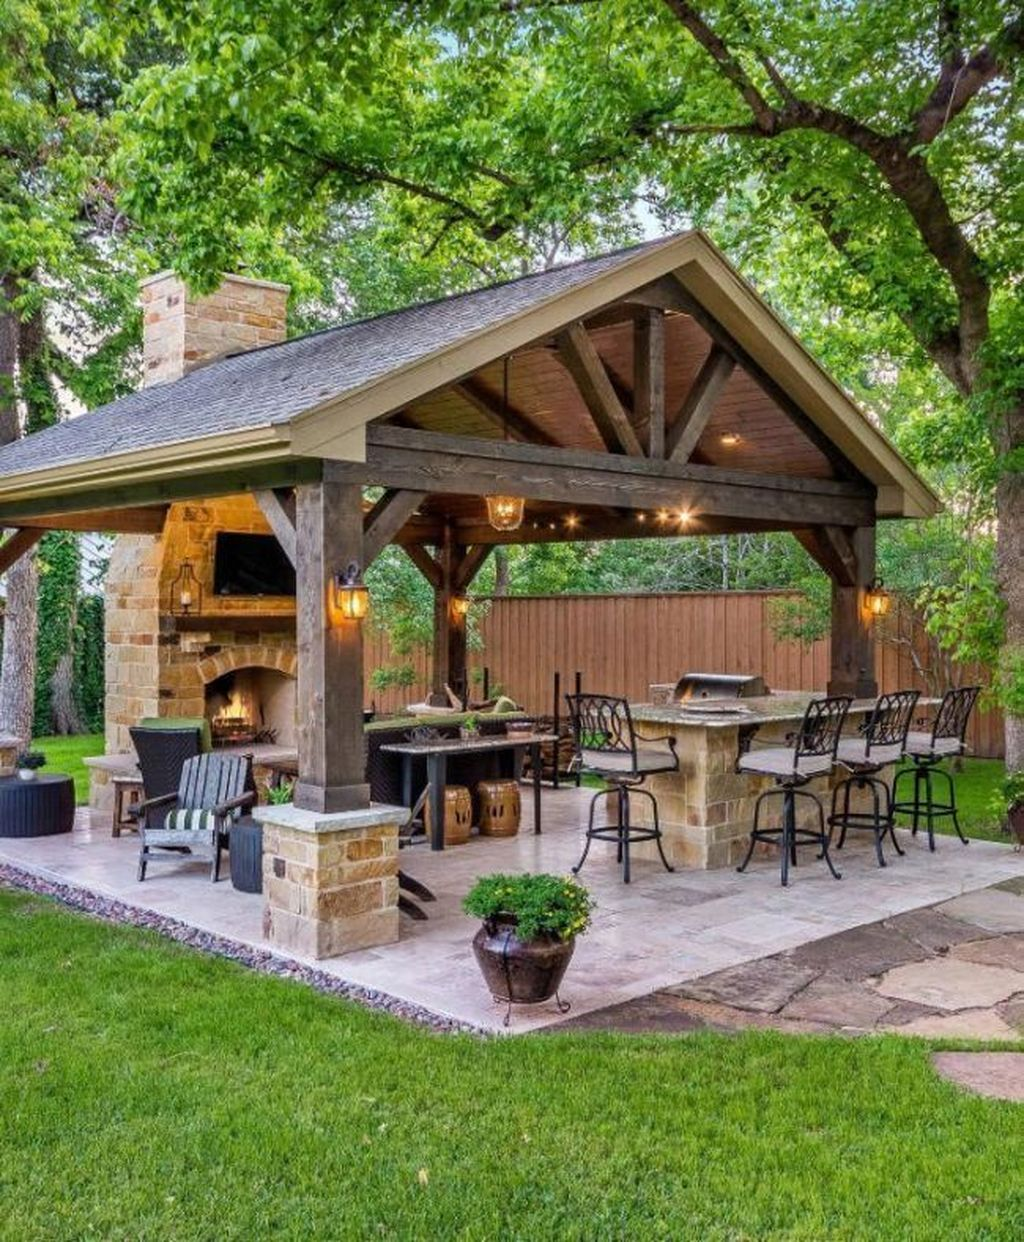 Admirable Cozy Patio Design Ideas To Relaxing On A Sunny Day 33